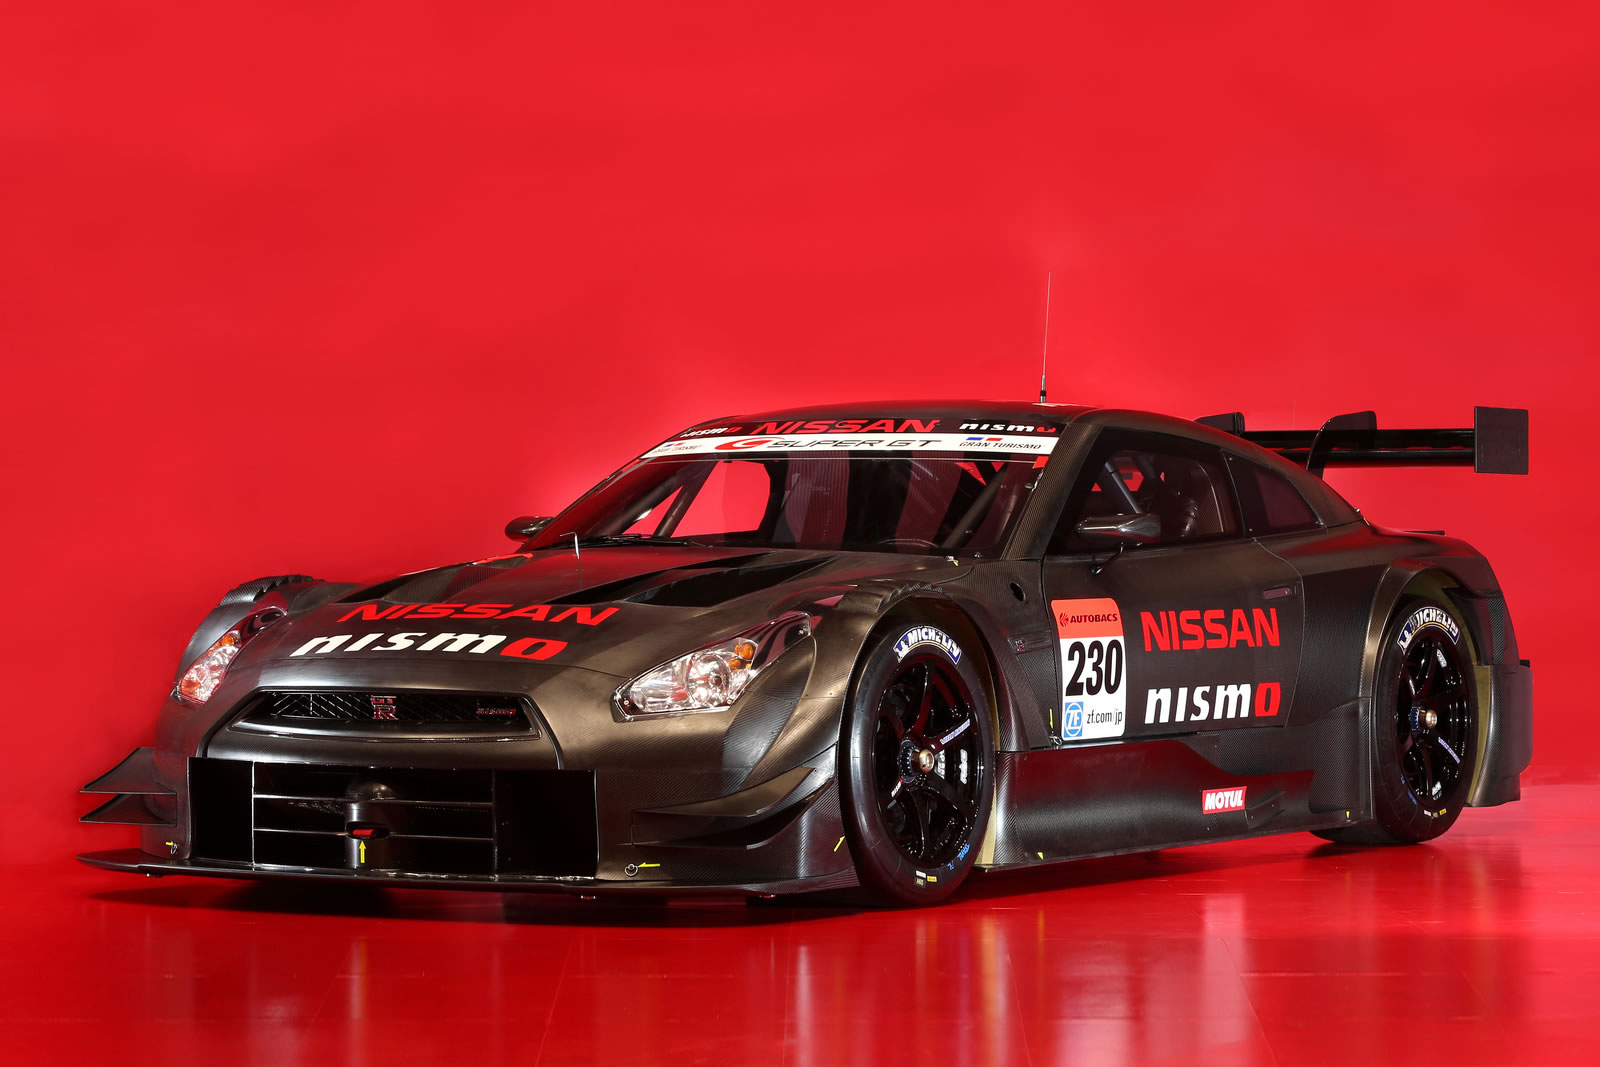 2014 nissan gt r nismo gt500 race car front photo carbon fiber body size 1600 x 1067 nr 1. Black Bedroom Furniture Sets. Home Design Ideas